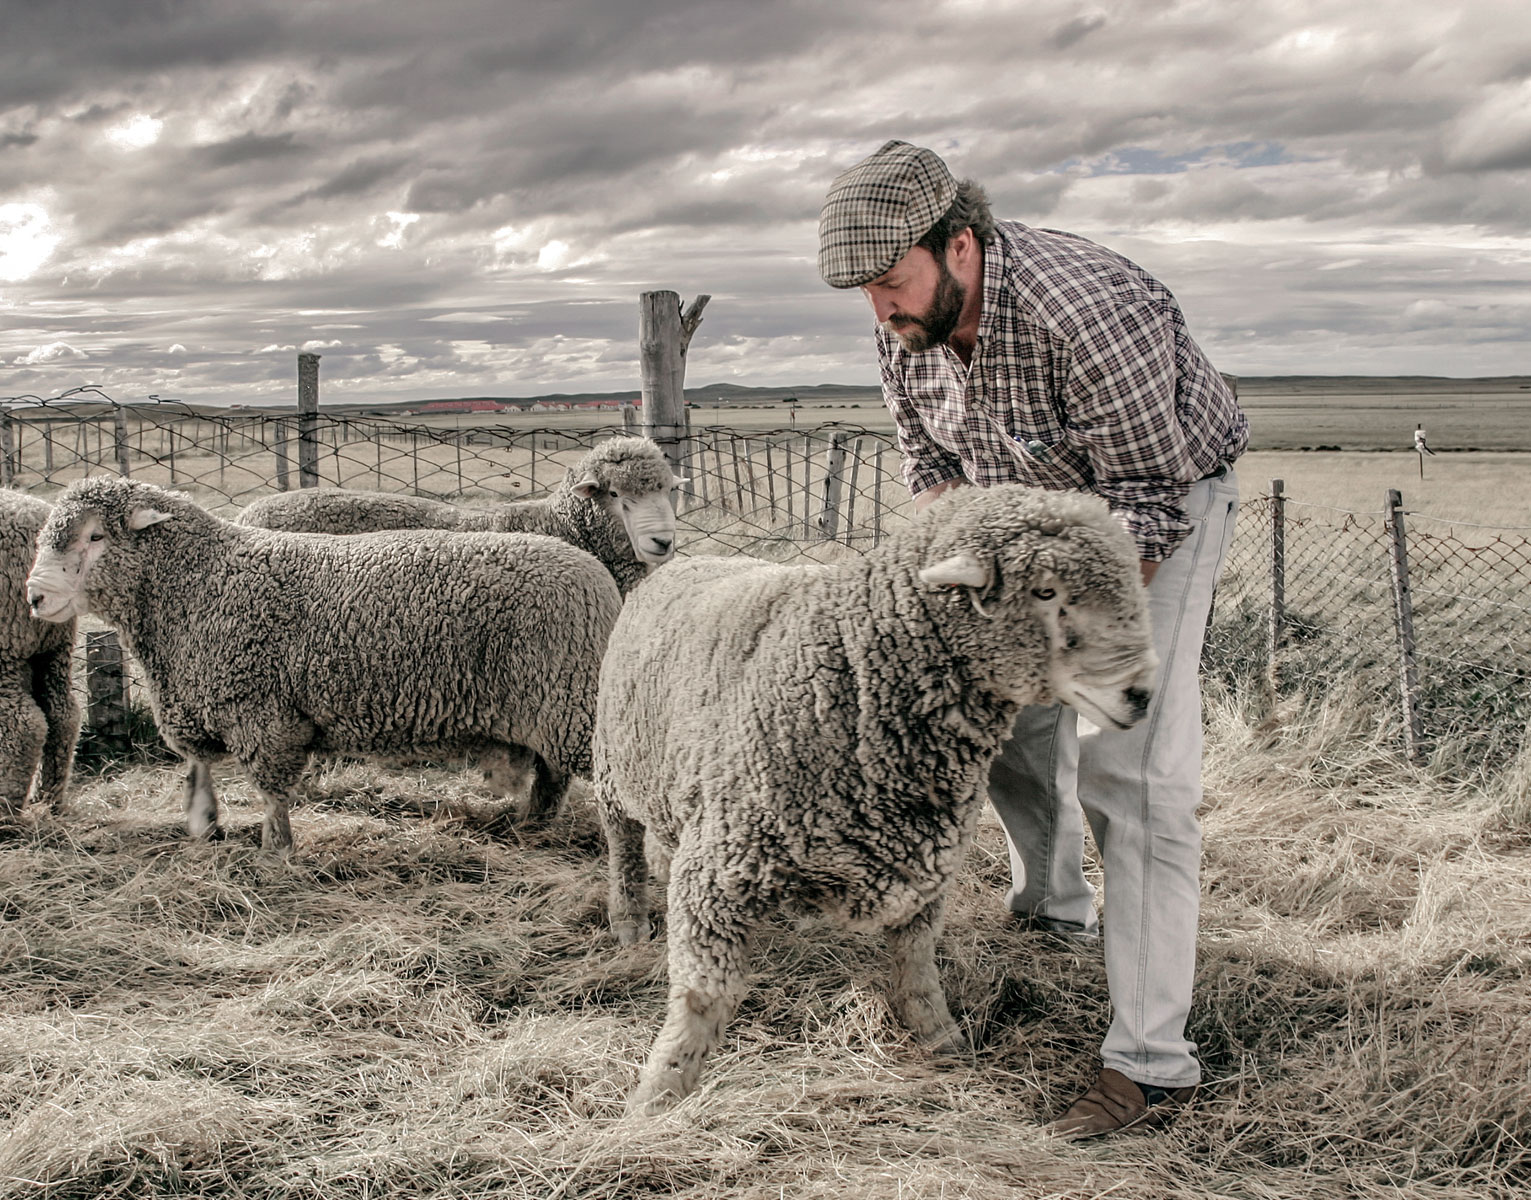 A sheep rancher in Tierra del Fuego, Argentina.